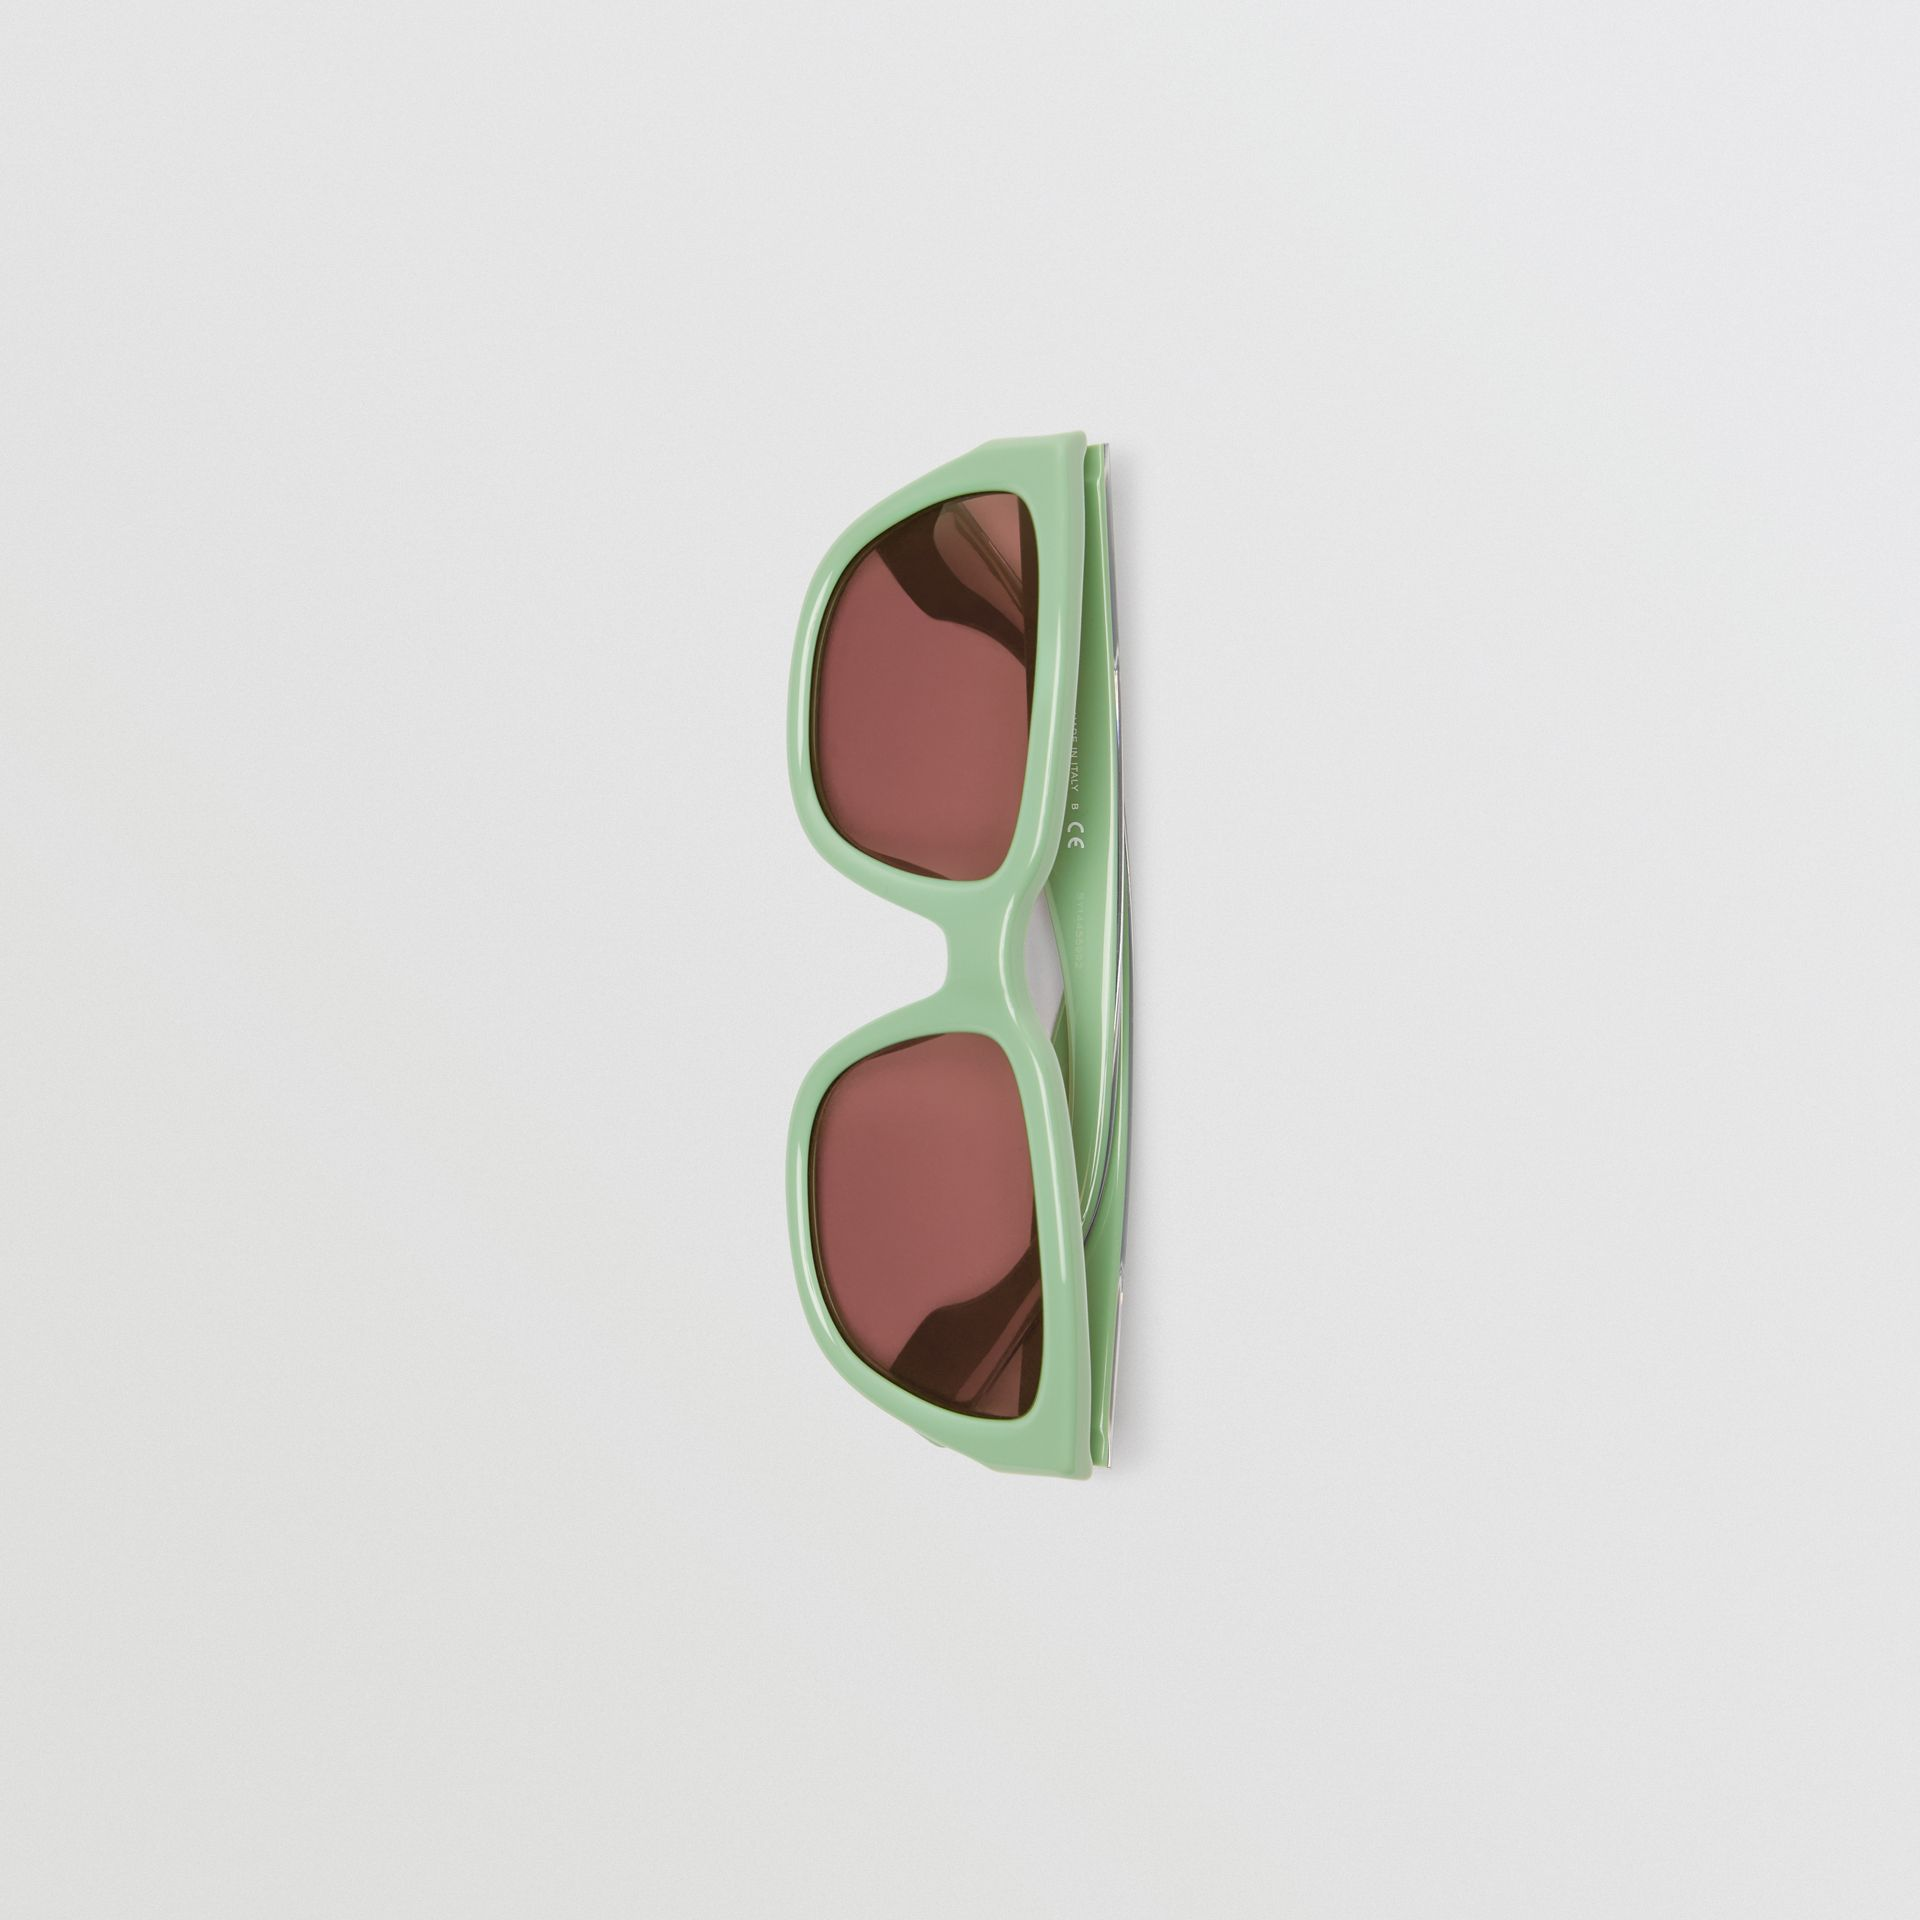 Square Frame Sunglasses in Mint Green - Women | Burberry - gallery image 3